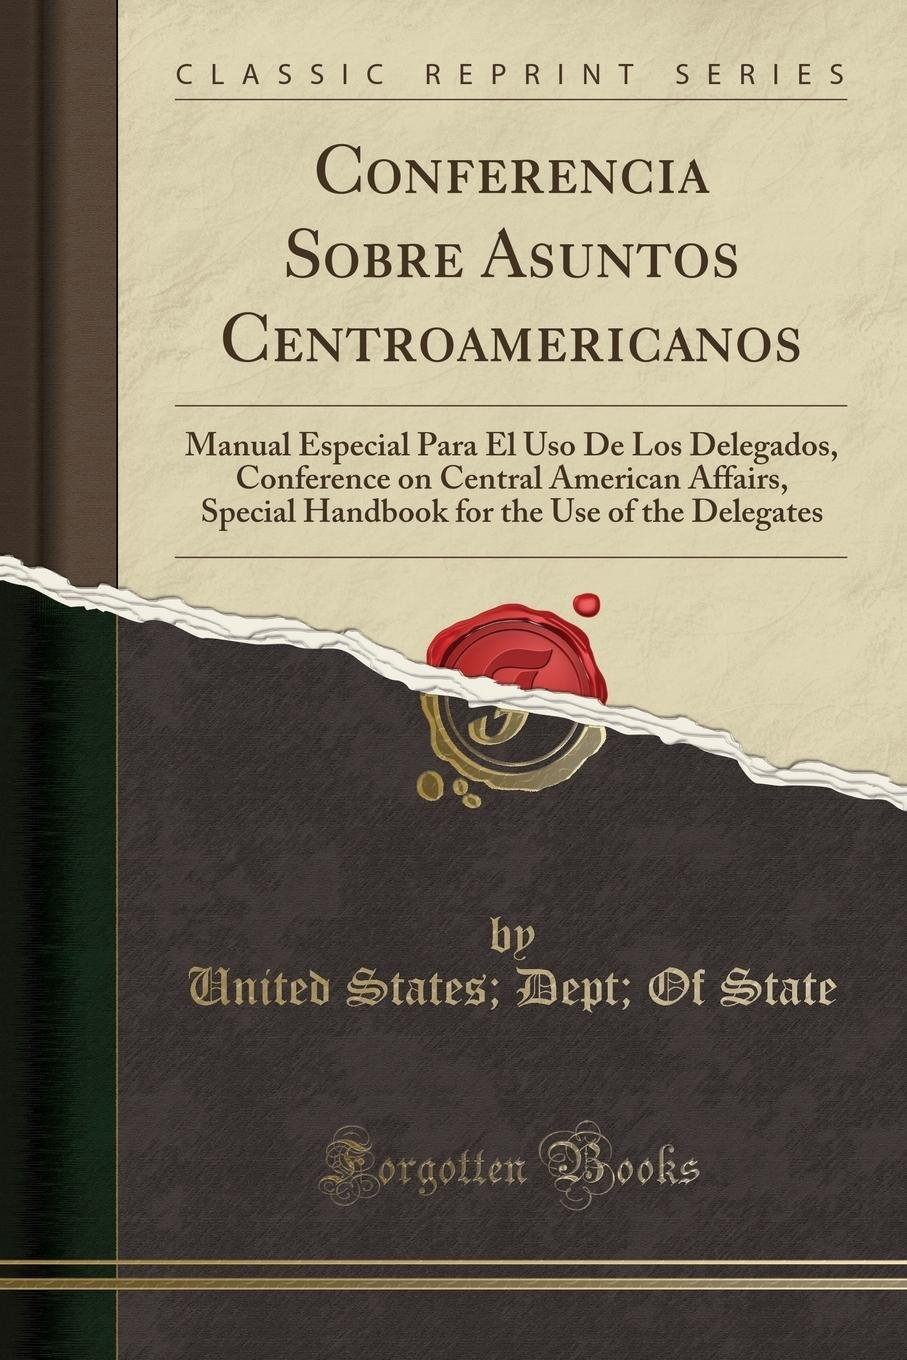 Download Conferencia Sobre Asuntos Centroamericanos: Manual Especial Para El Uso De Los Delegados, Conference on Central American Affairs, Special Handbook for the Use of the Delegates (Classic Reprint) PDF